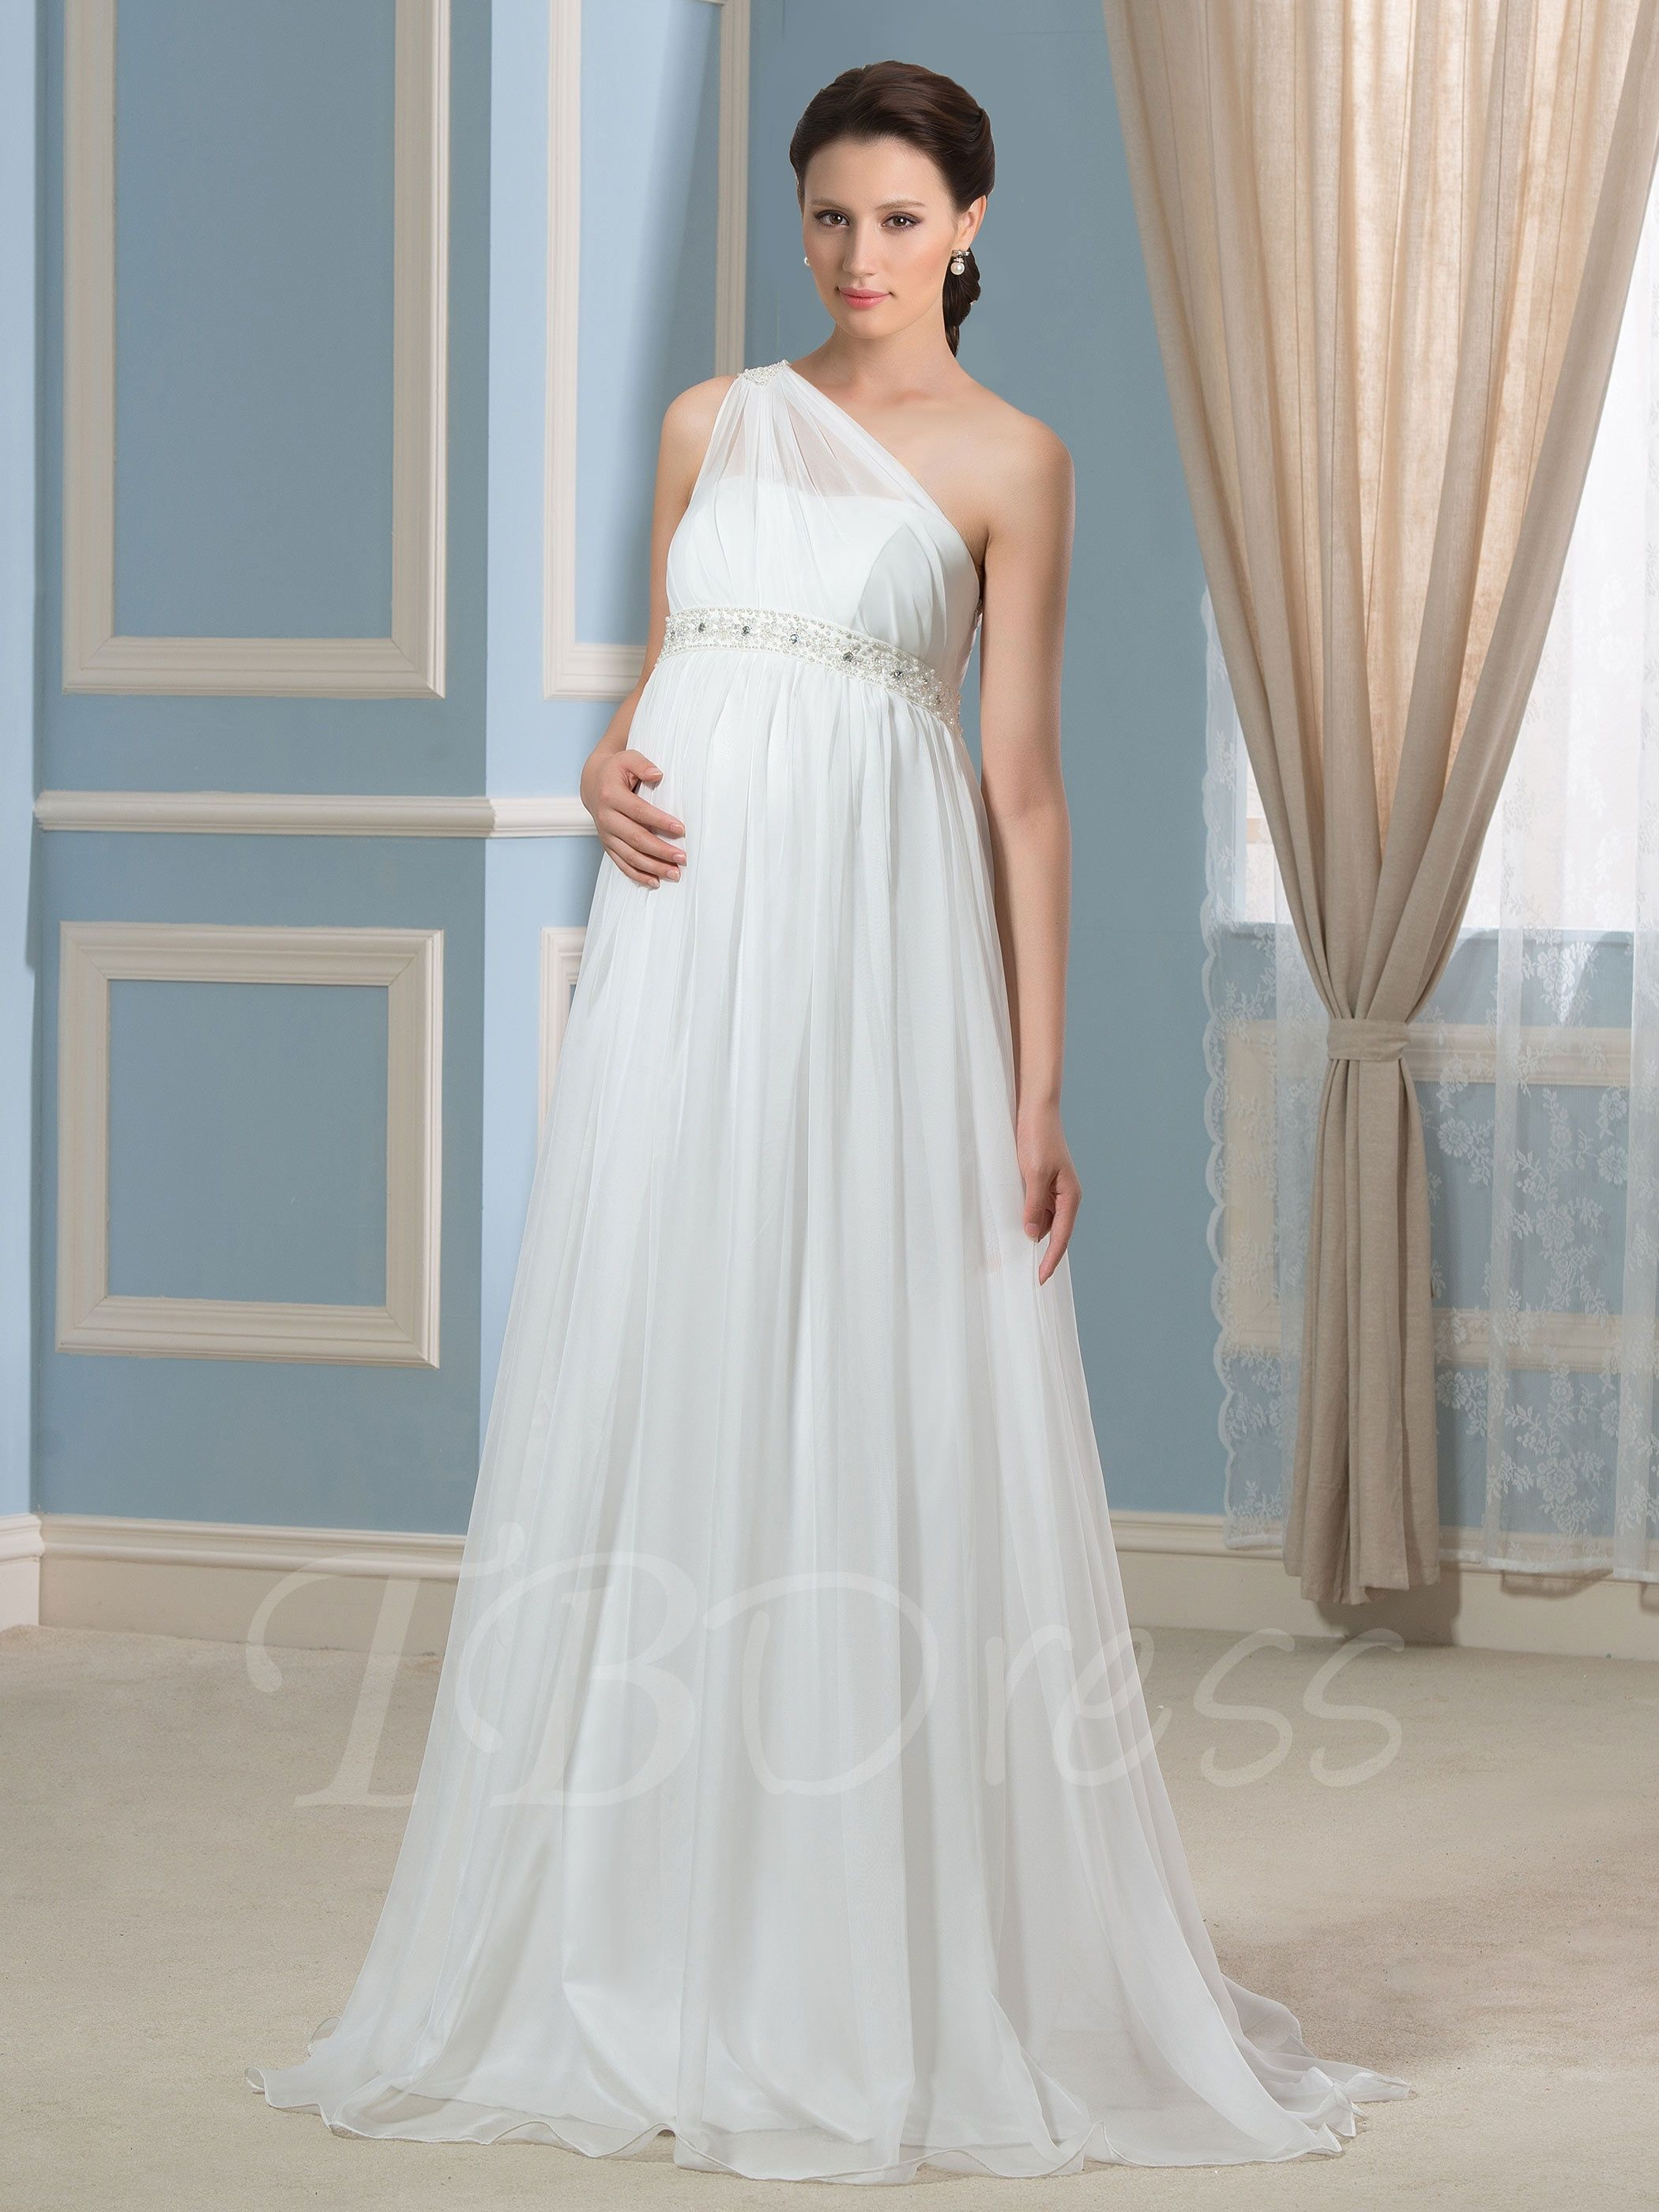 Chiffon Empire Maternity Dress With Belted Waistband Pregnant Wedding Dress Empire Maternity Dress Maternity Dresses